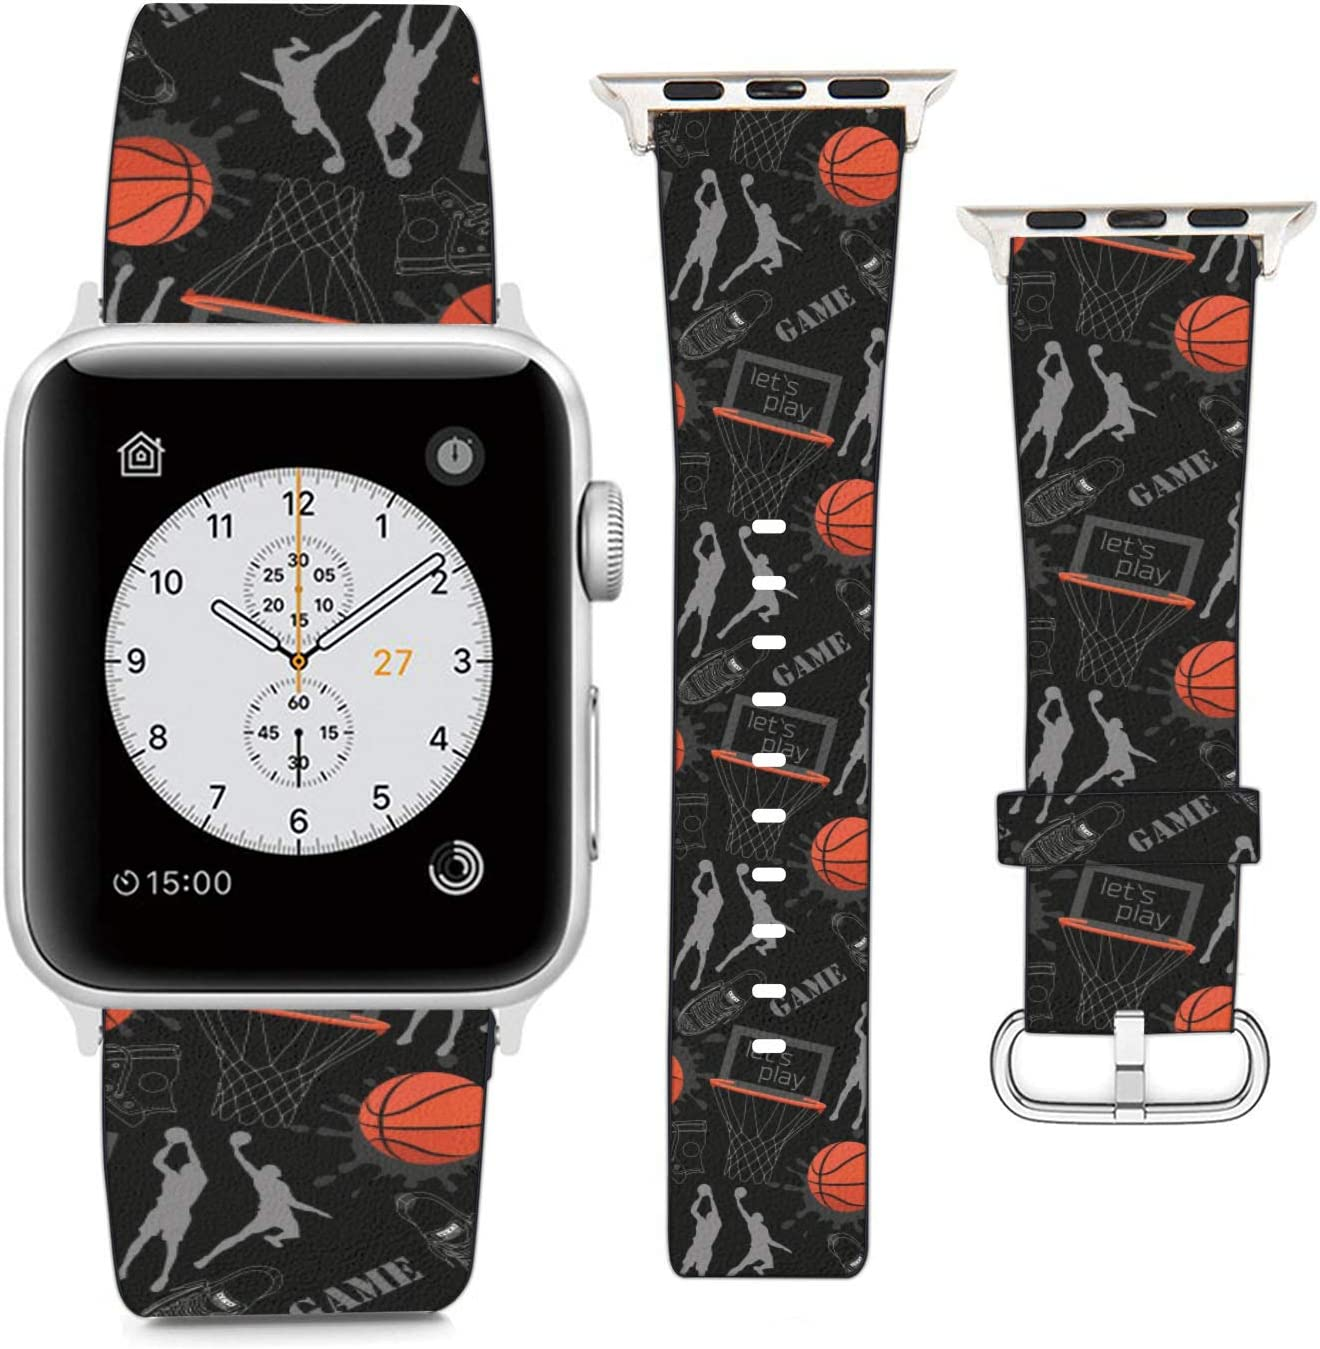 Compatible with Apple Watch Wristband 38mm 40mm, (Basketball Player Pattern) PU Leather Band Replacement Strap for iWatch Series 5 4 3 2 1